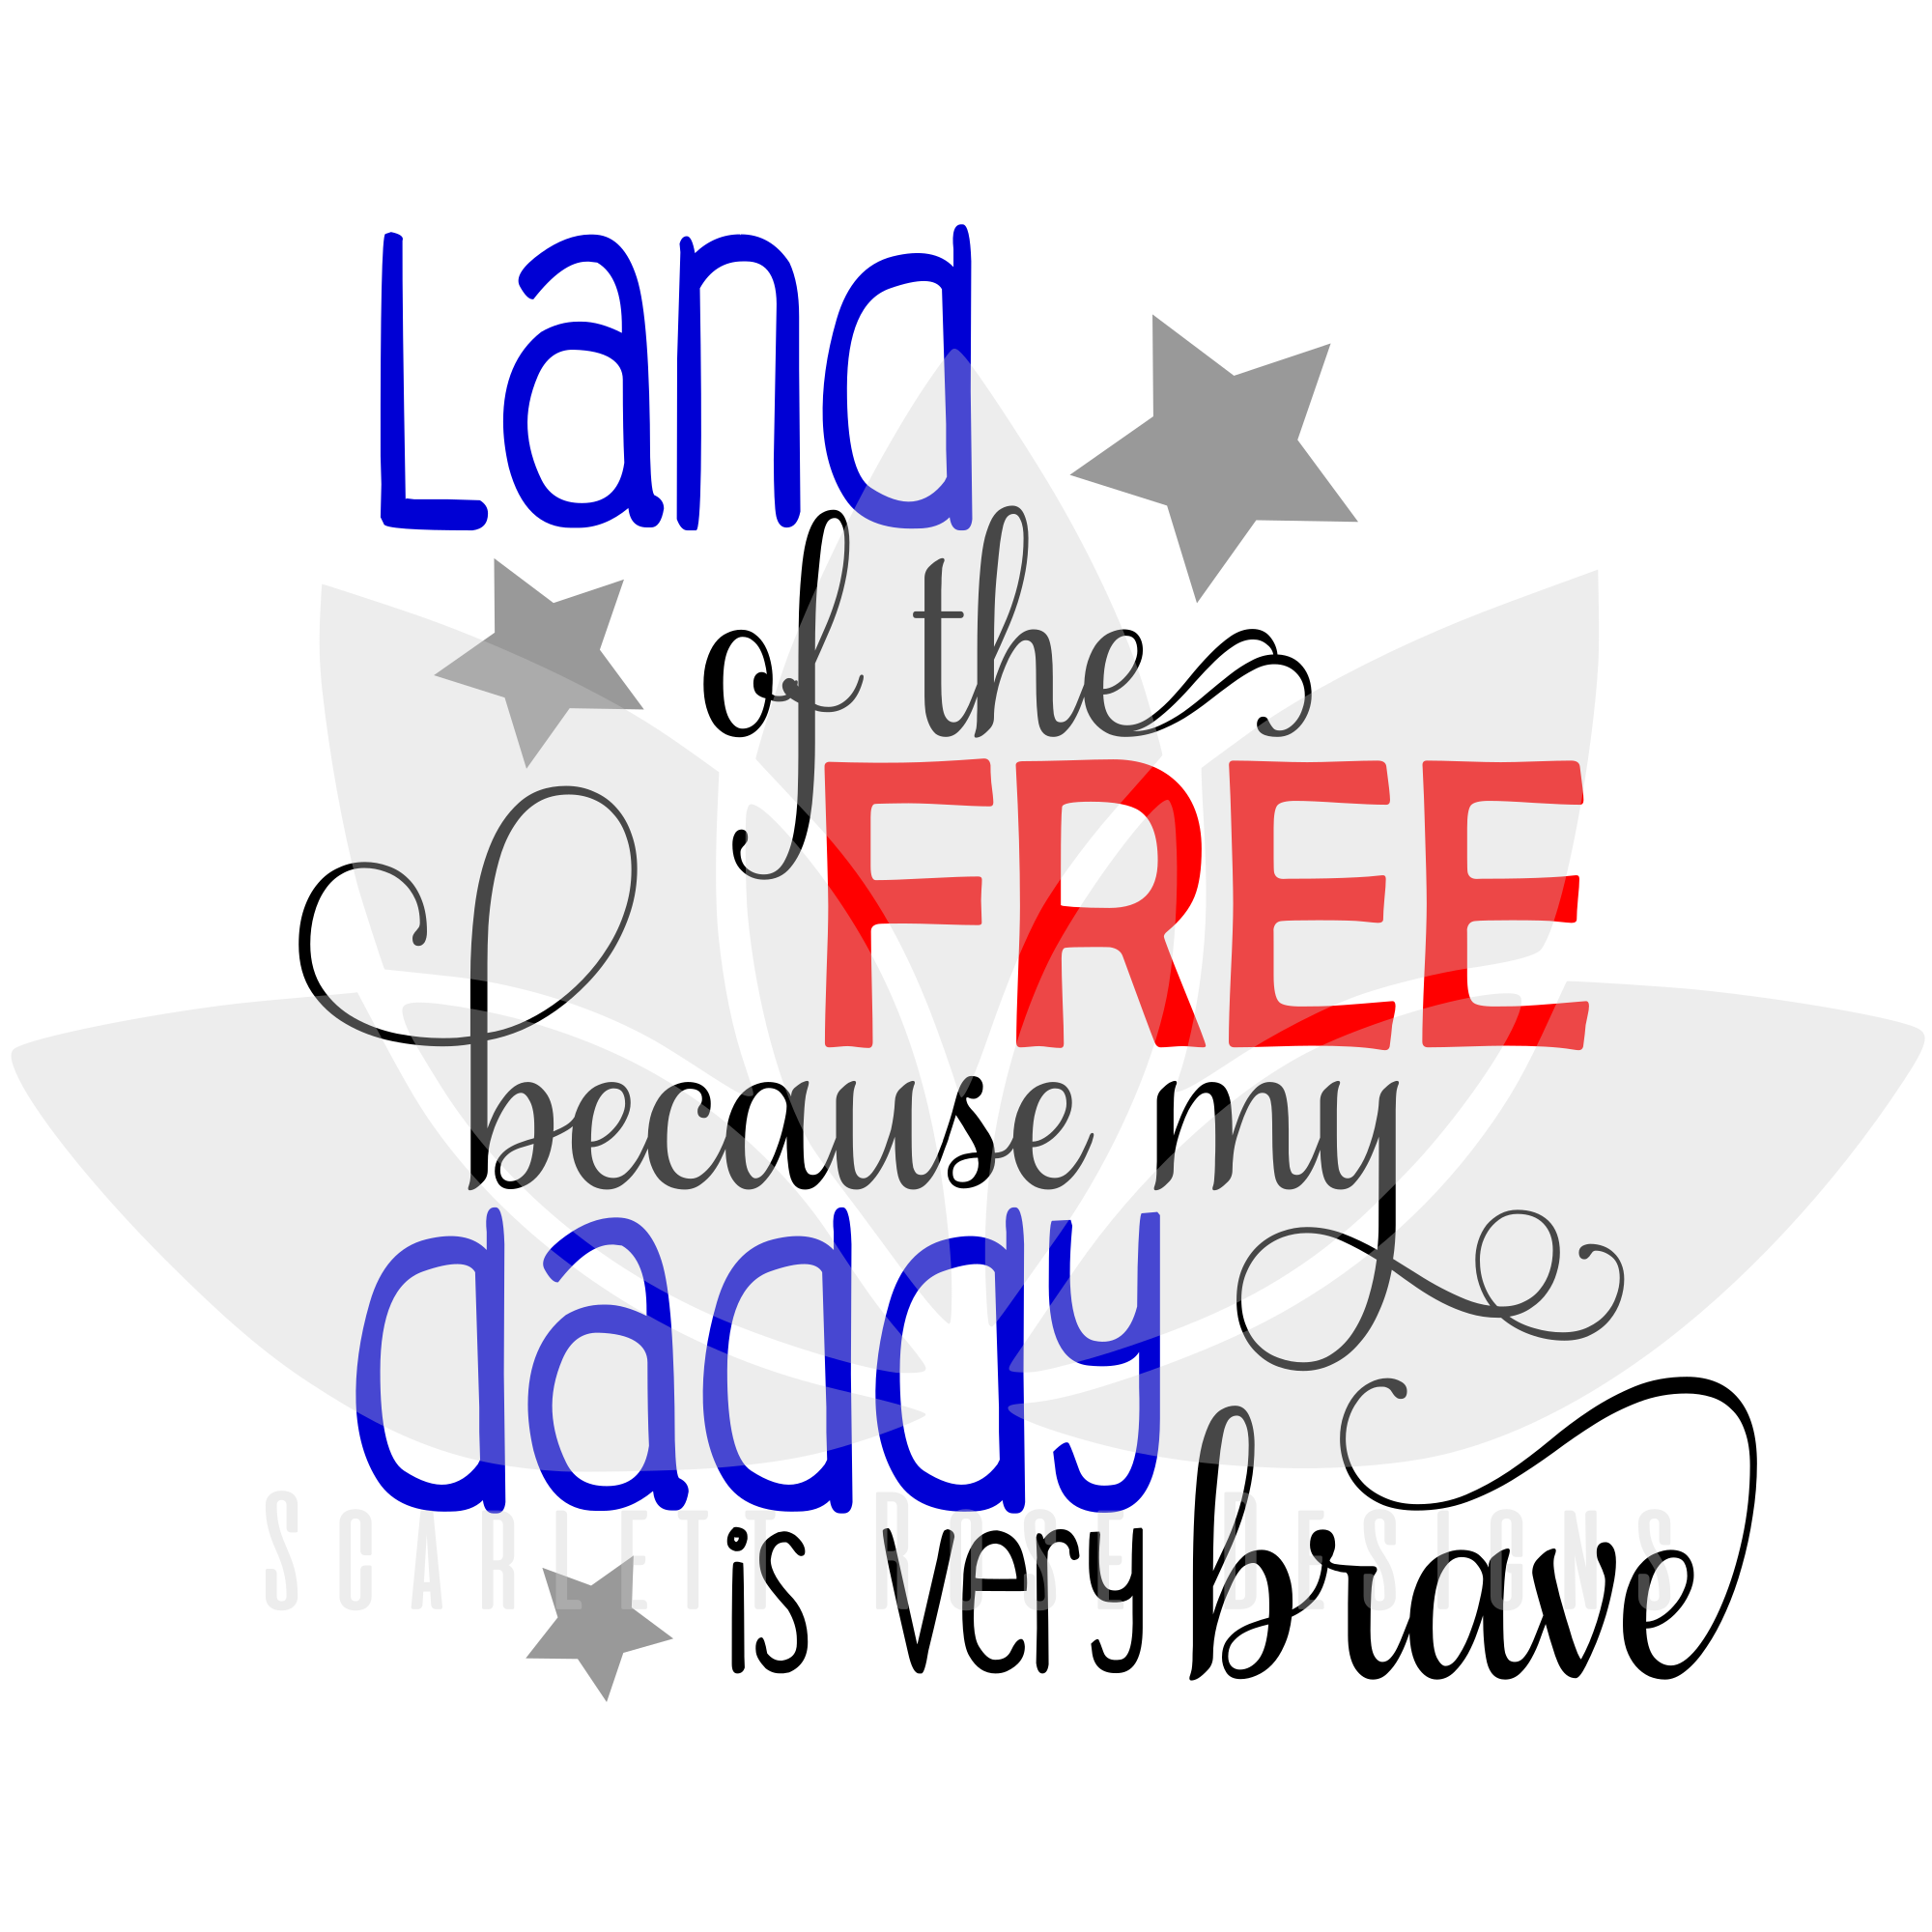 Fourth Of July Svg Cut File Land Of The Free Because My Daddy Is Brave Svg Cut File Scarlett Rose Designs